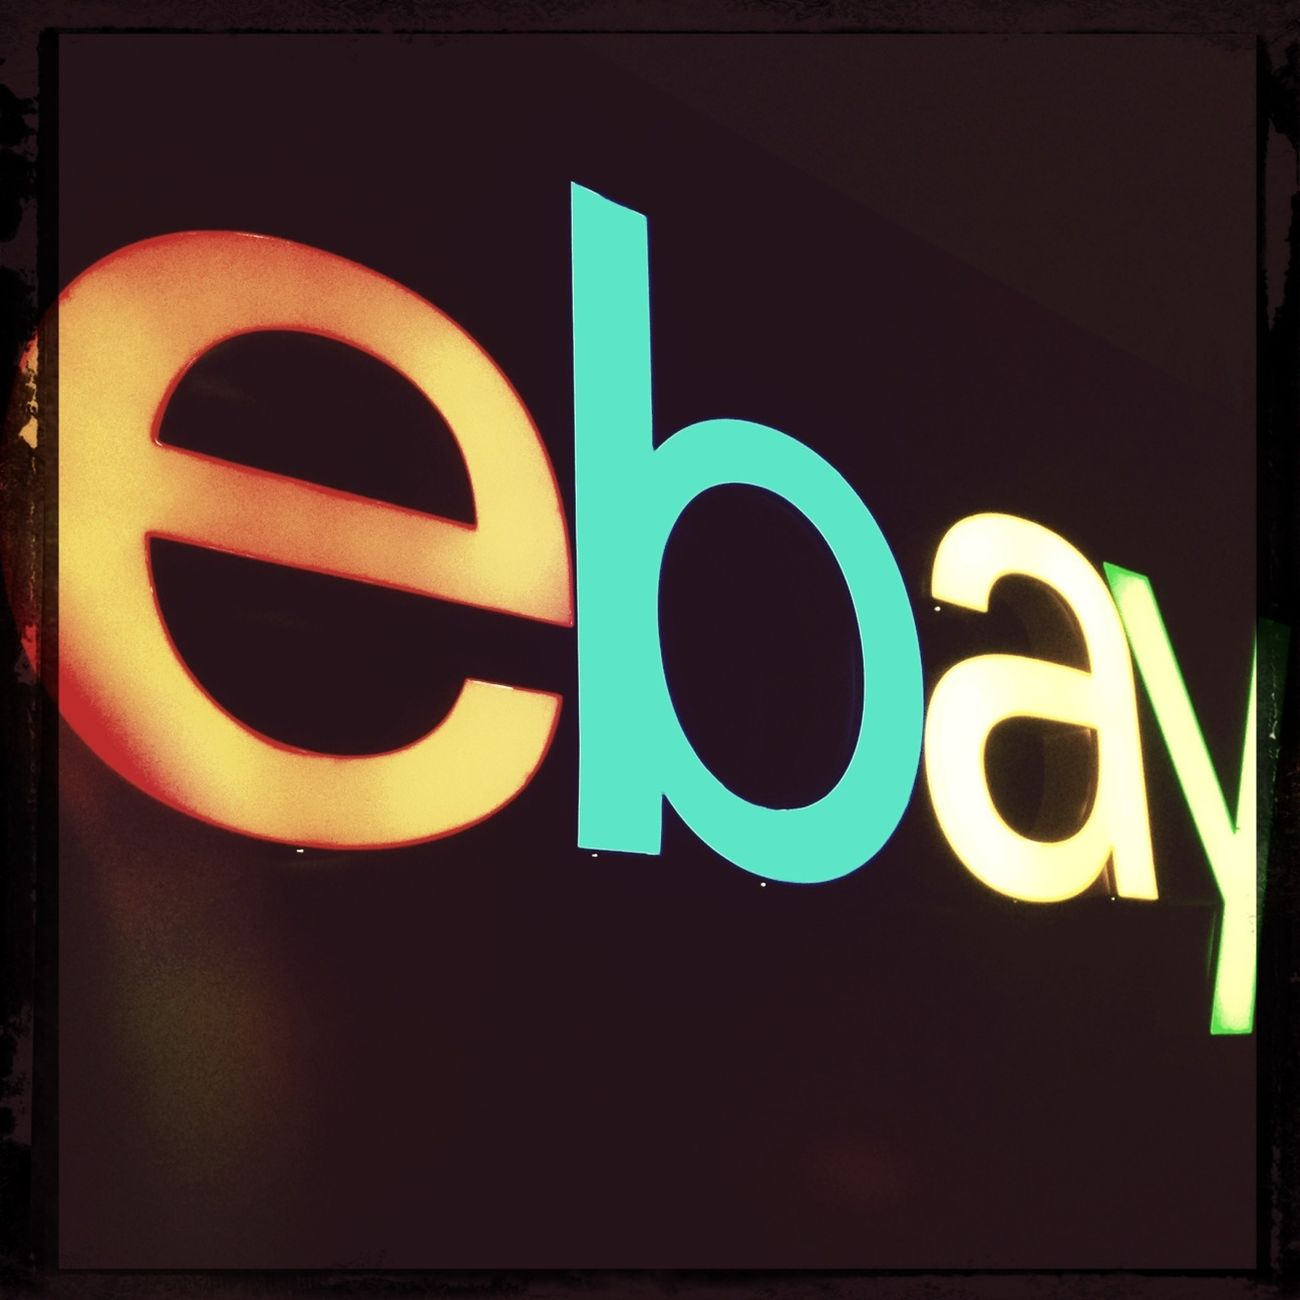 eBay sign in San Jose